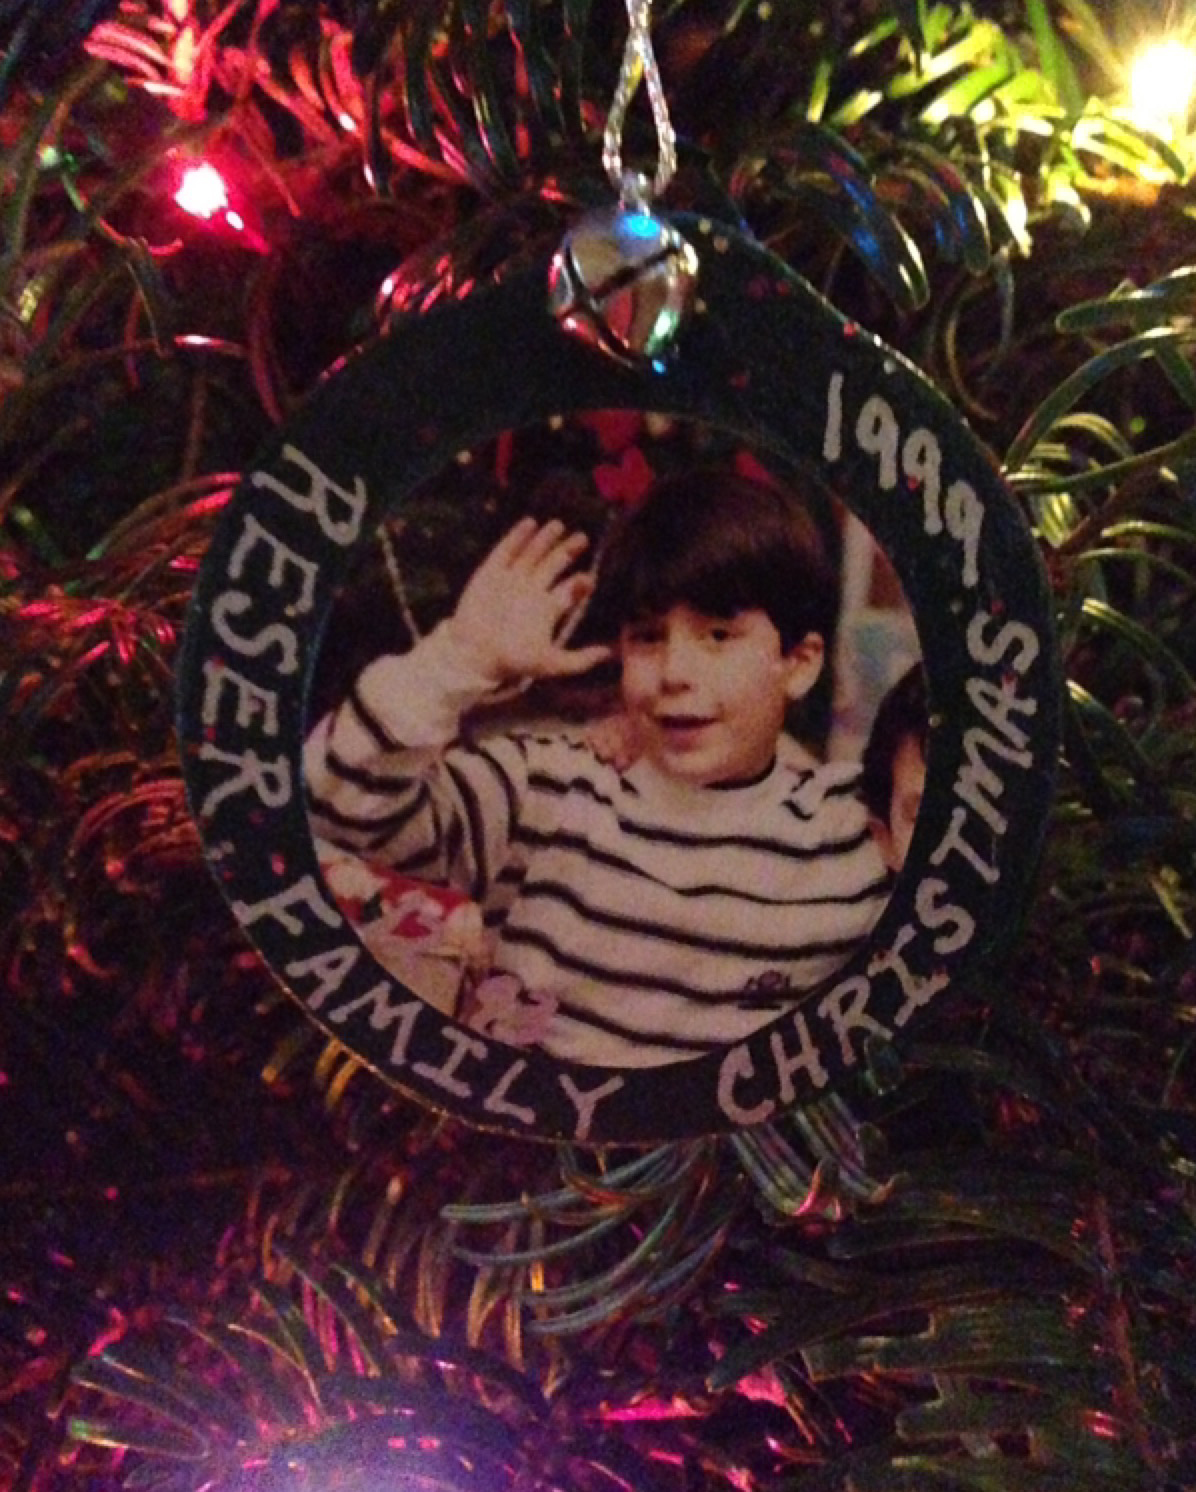 This ornament hangs at my parents' house in Spokane.